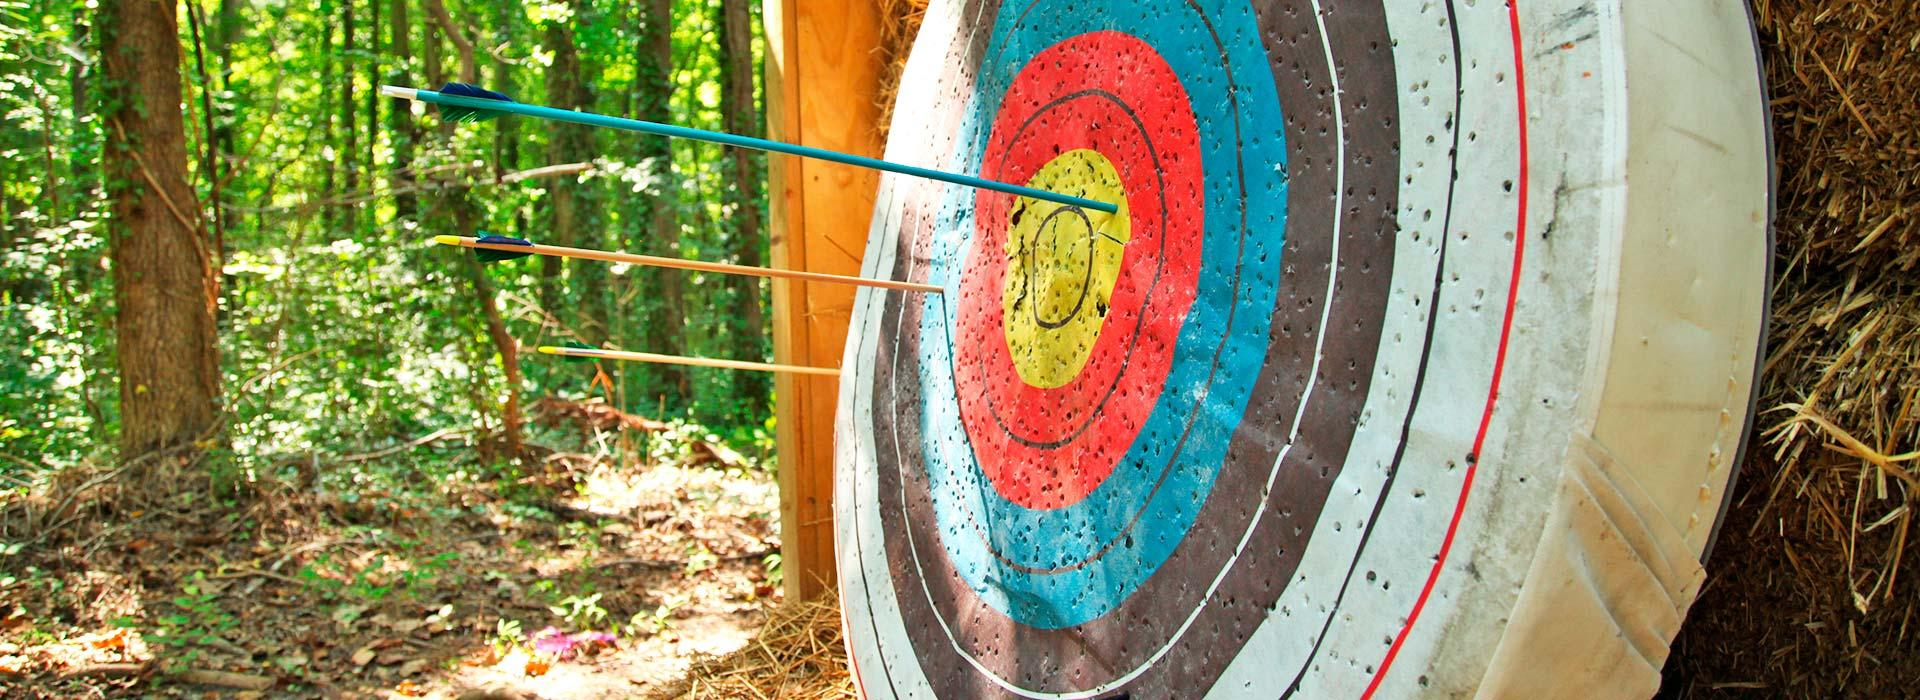 arrows on target from archery